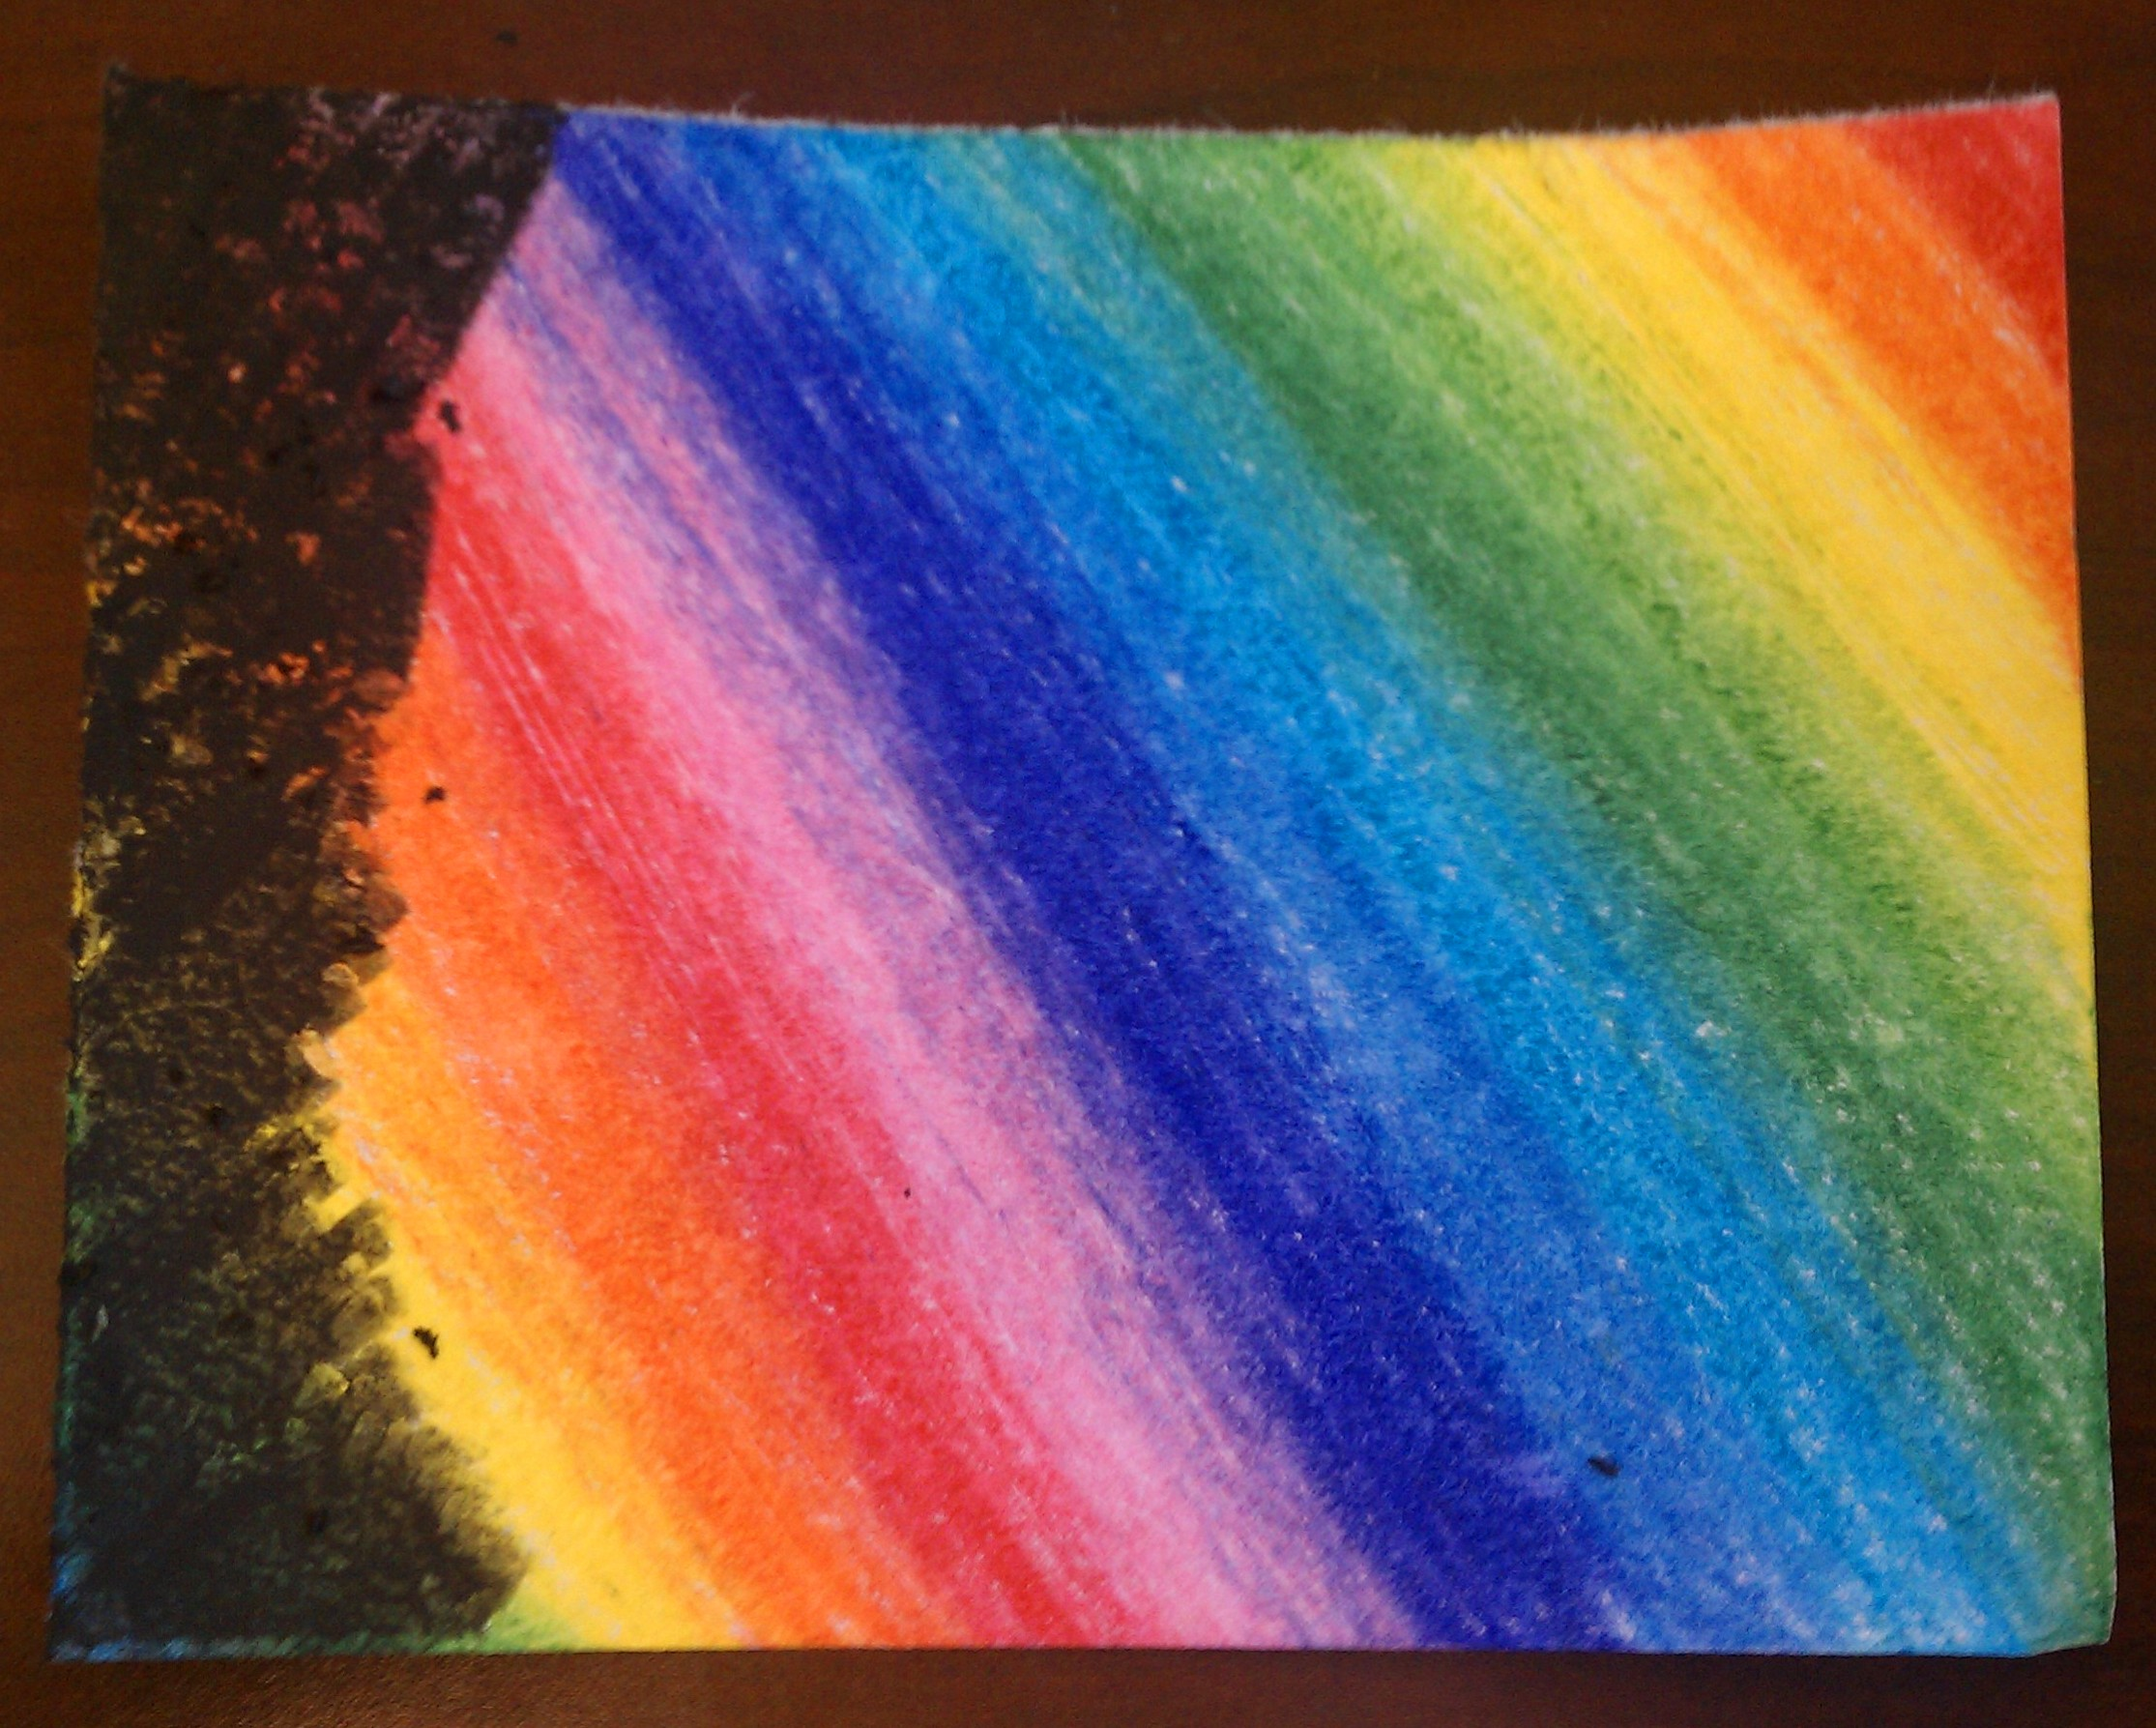 Drawn rainbow crayon To You the colors a